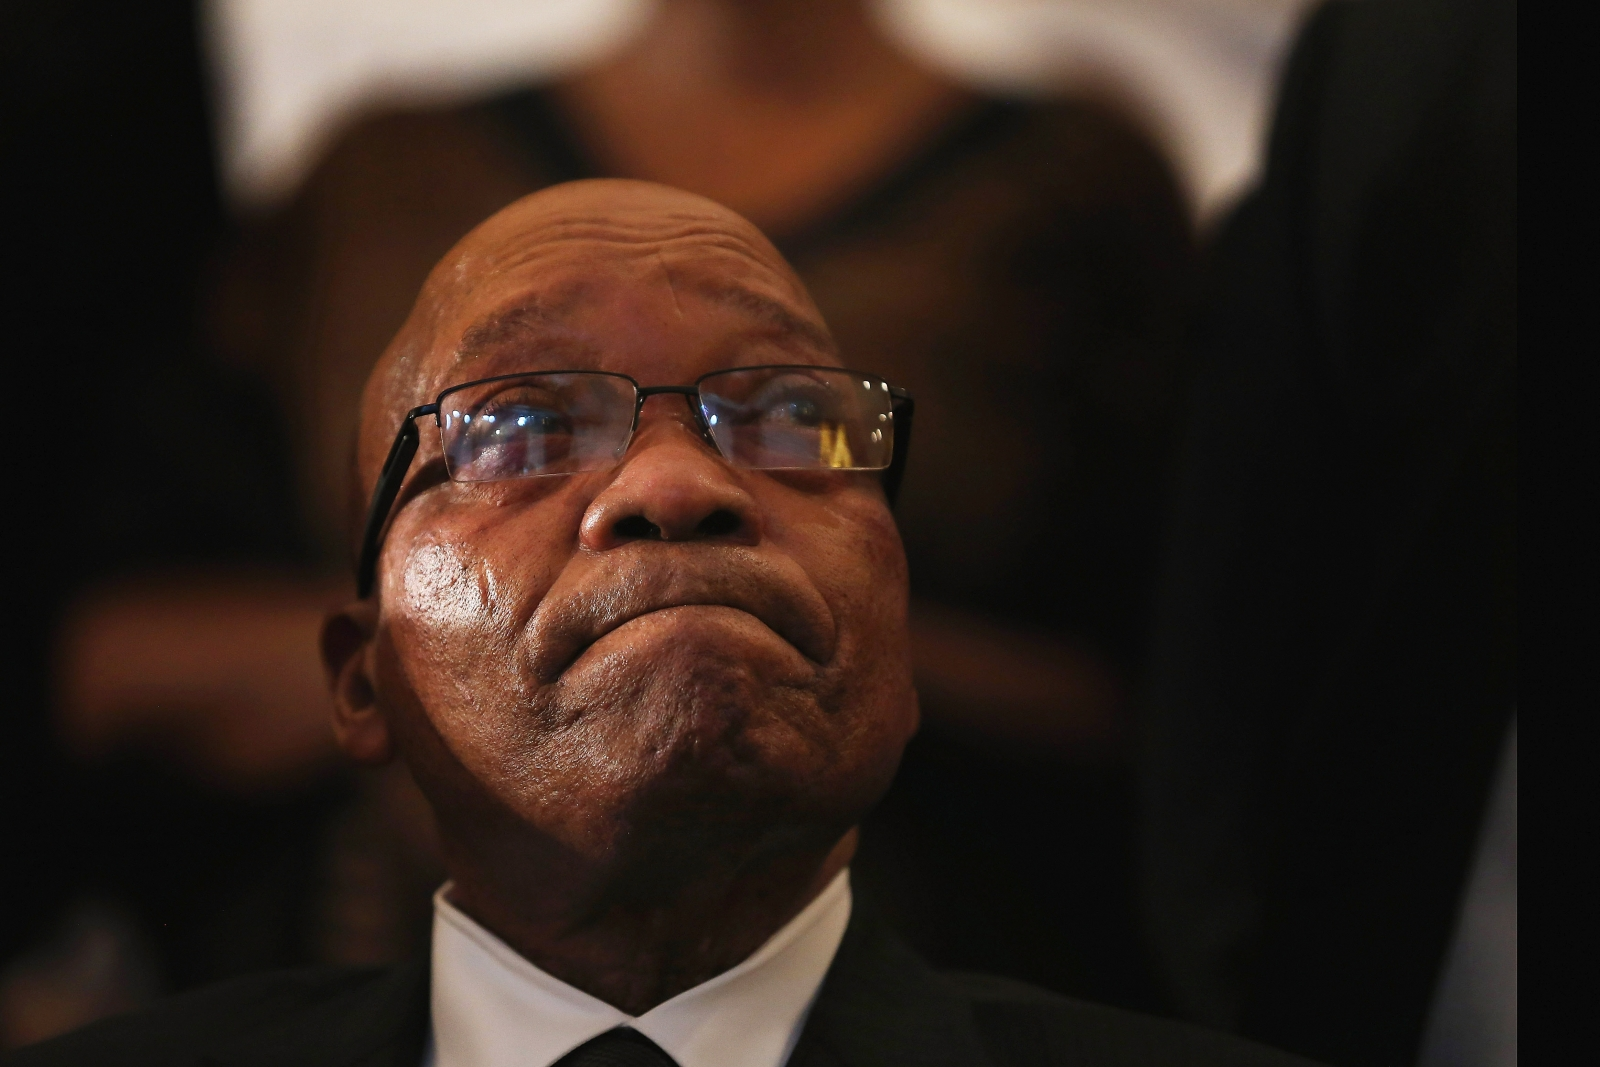 Jacob Zuma crying